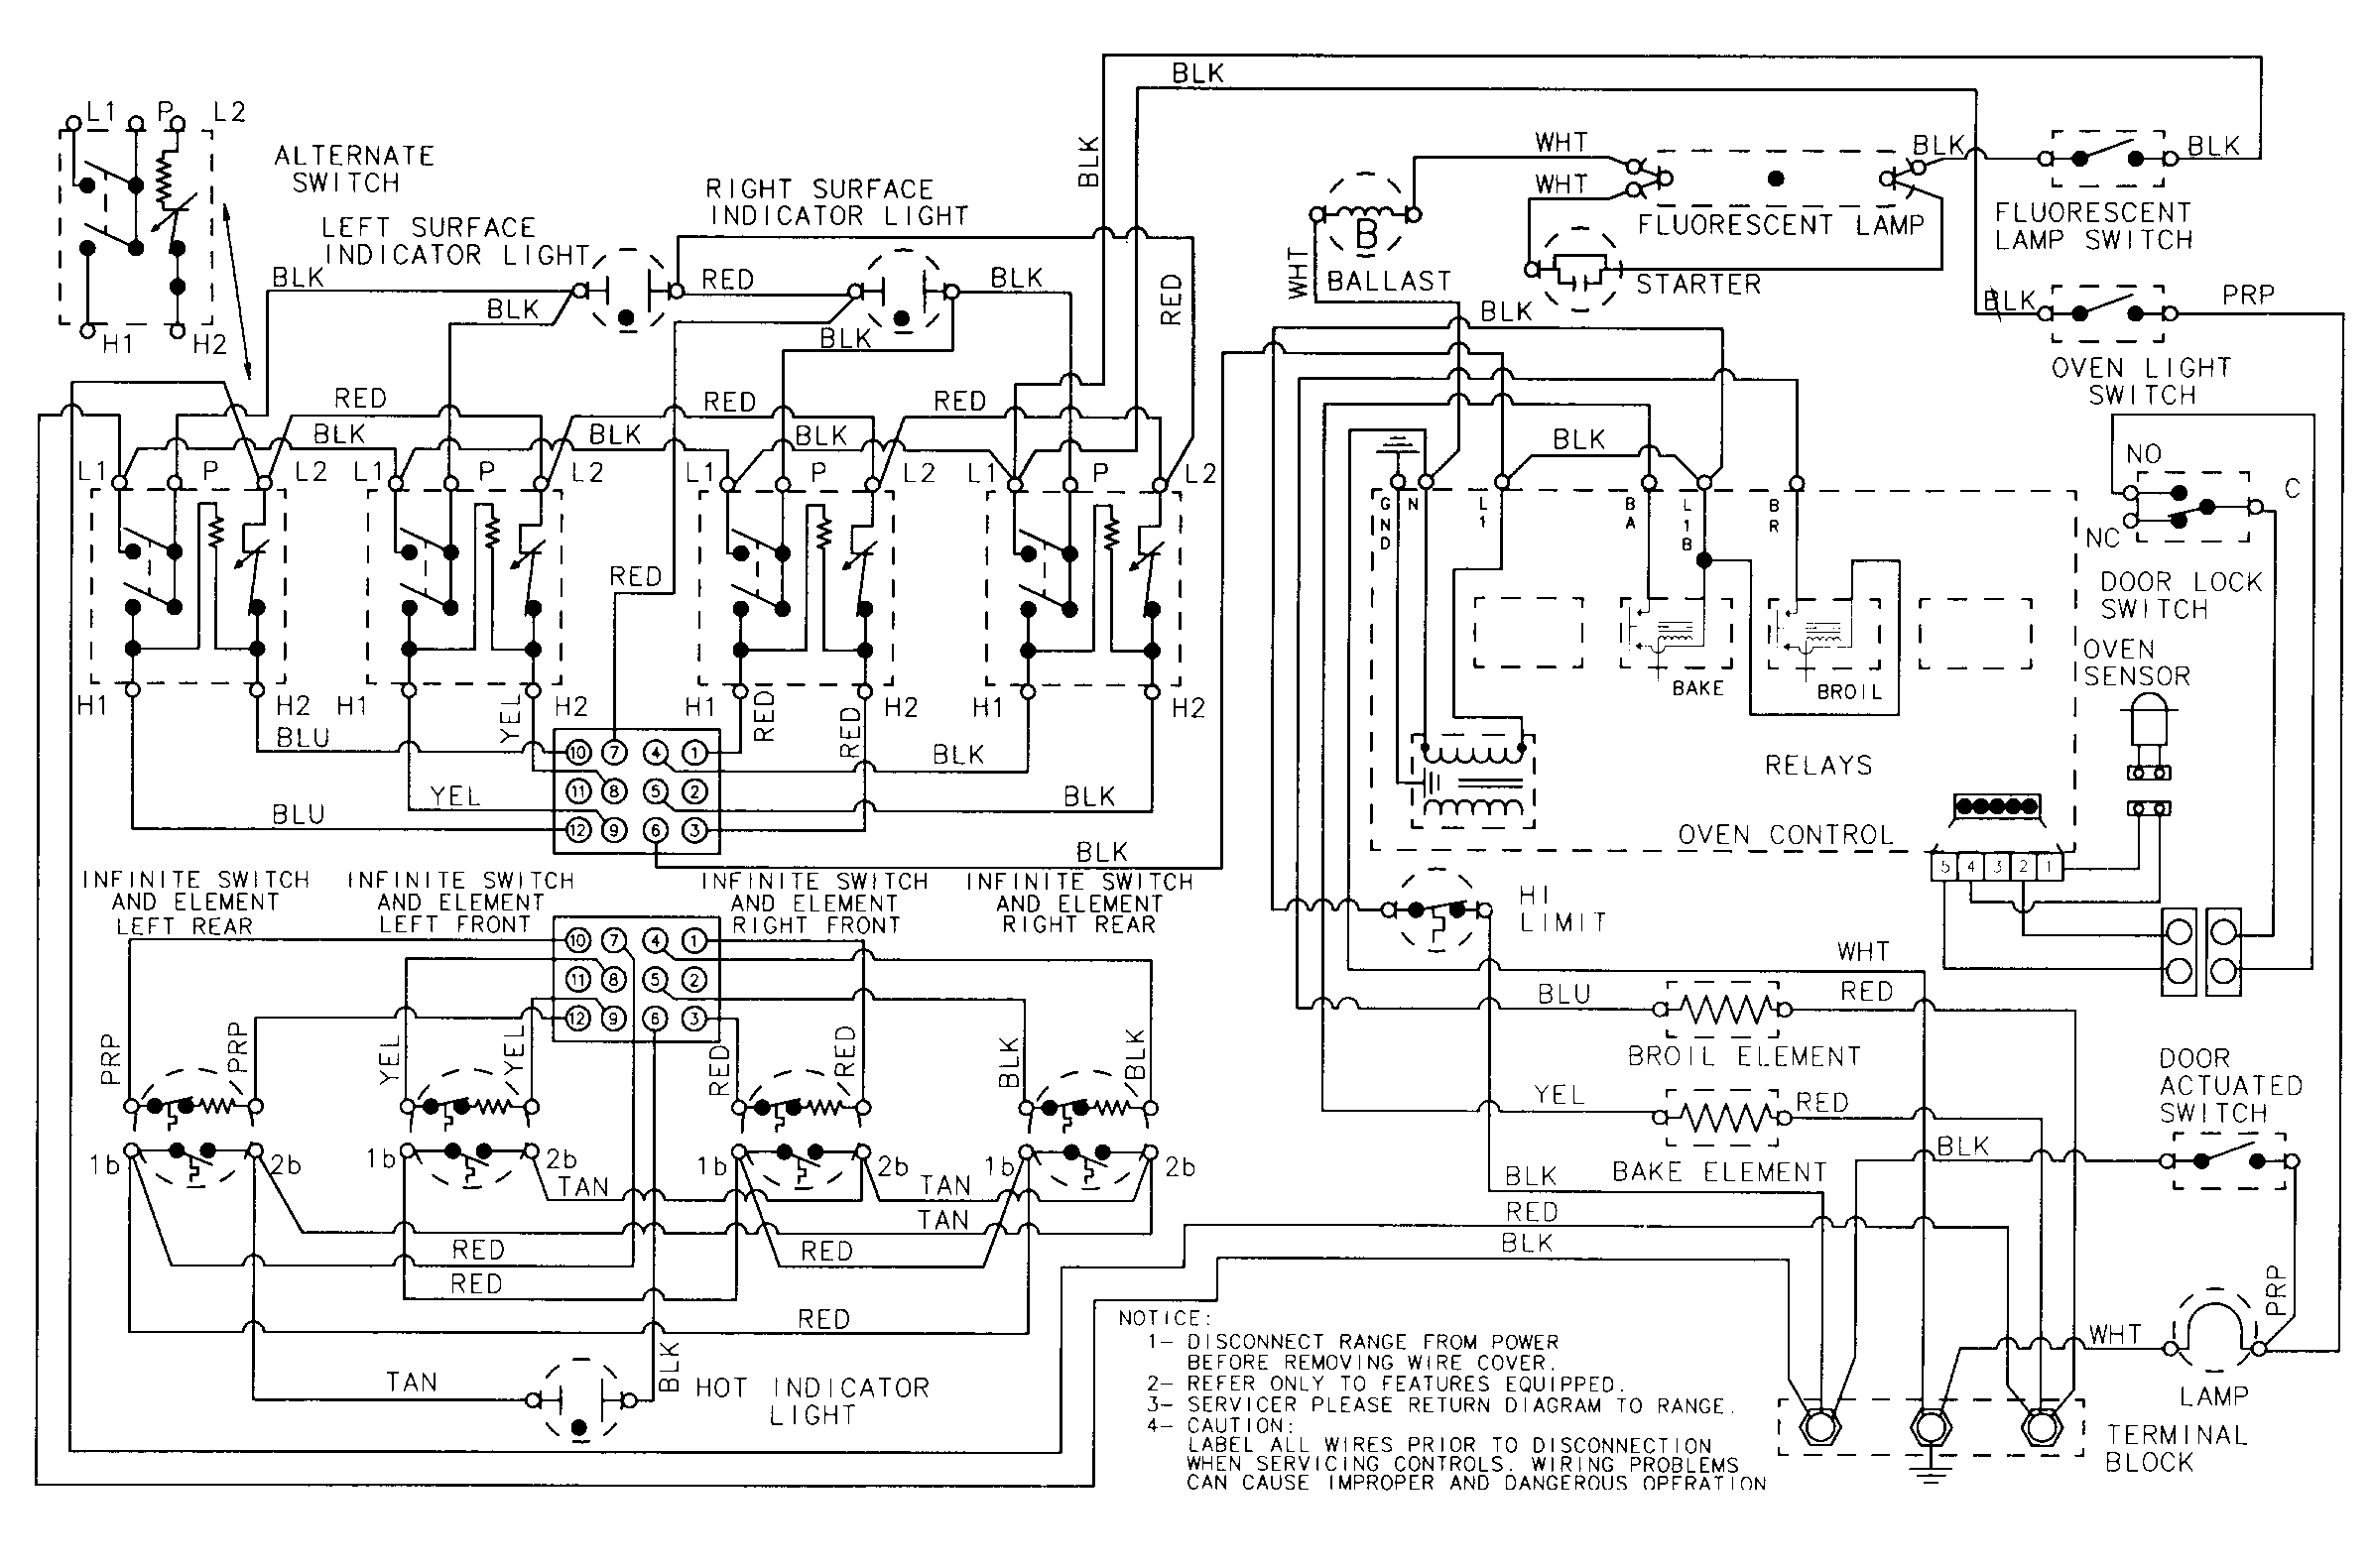 pump control panel wiring diagram schematic Collection-CRE9600 Range Wiring information Parts diagram Control panel Parts diagram 6-q